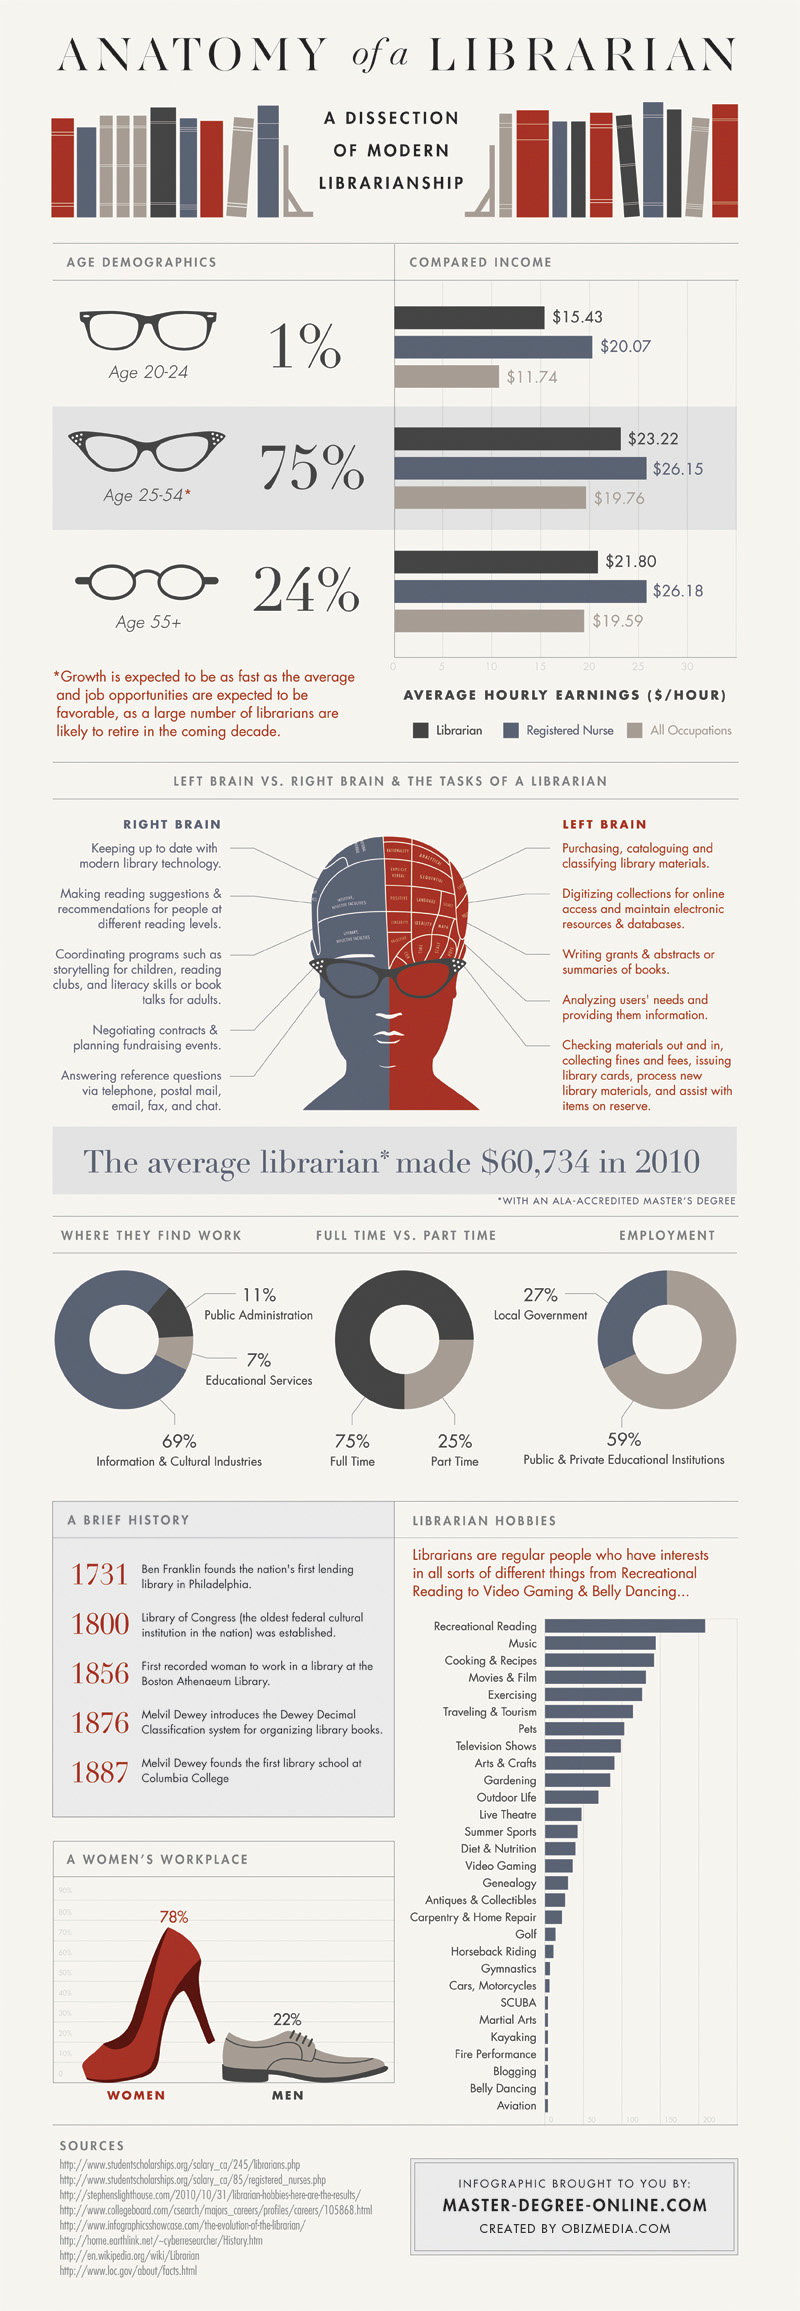 Anatomy of a Librarian: A dissection of modern librarianship #infographic